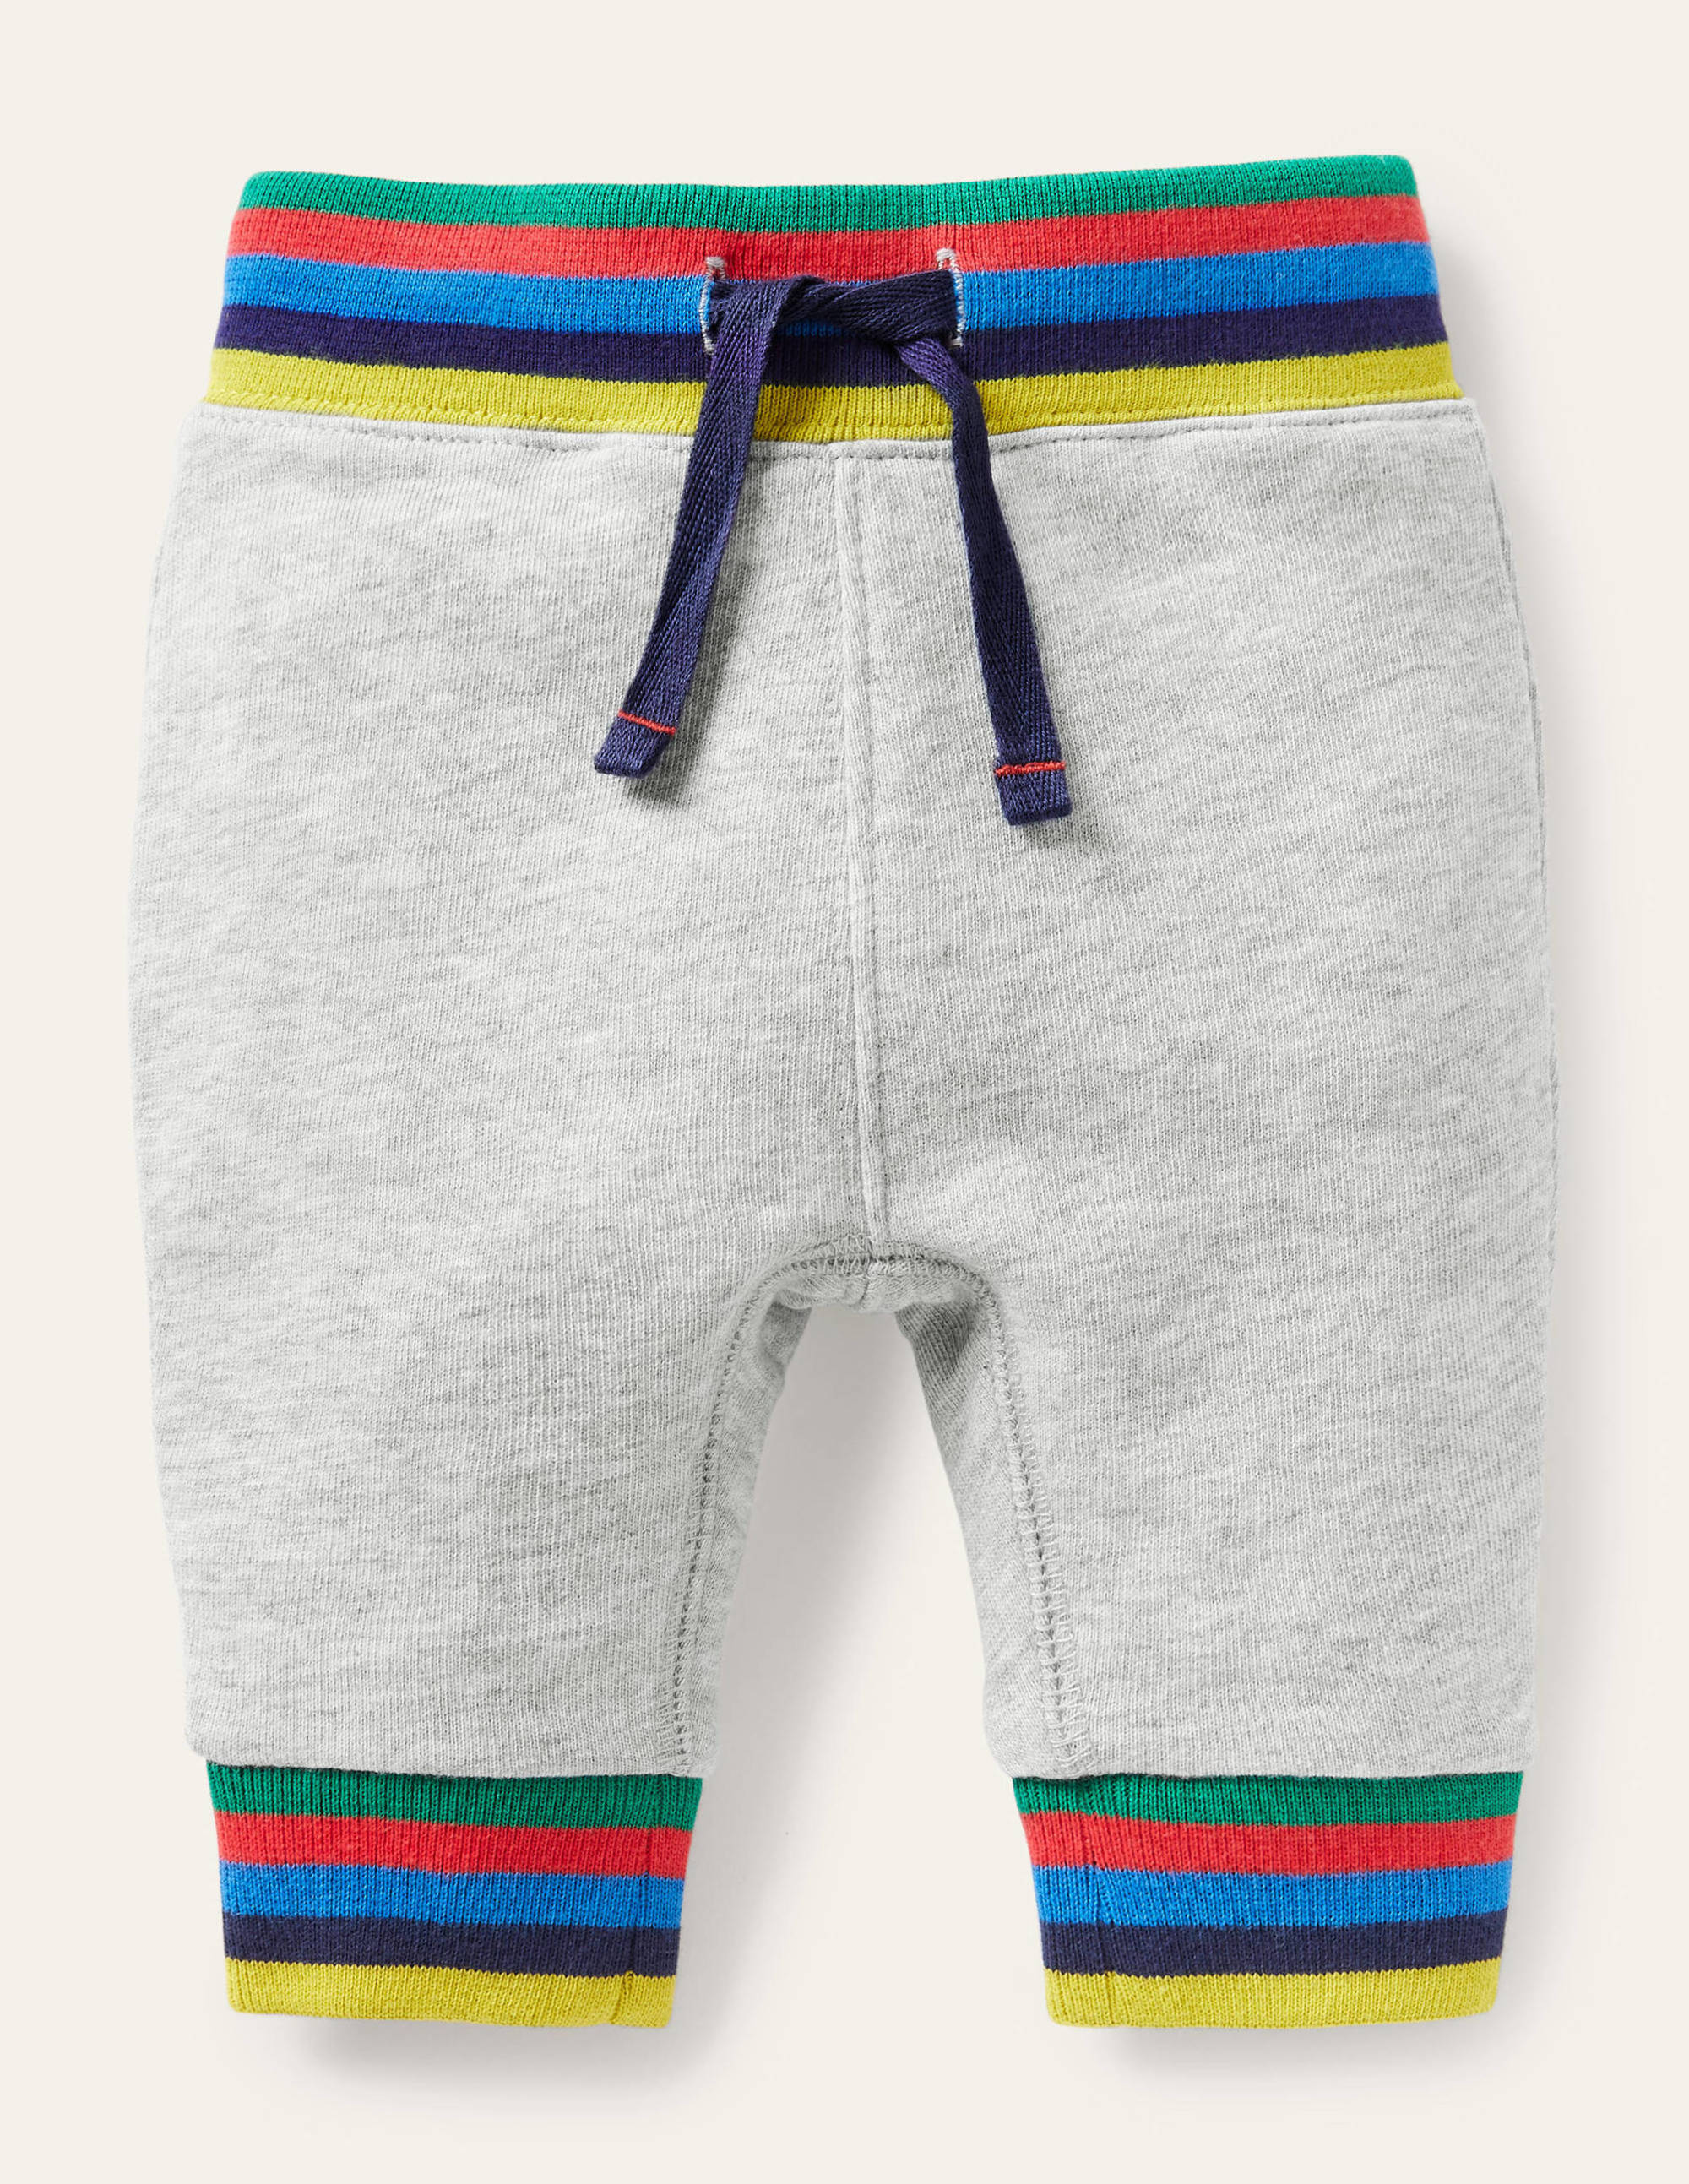 Boden Rainbow Rib Jersey Bottoms - Grey Marl